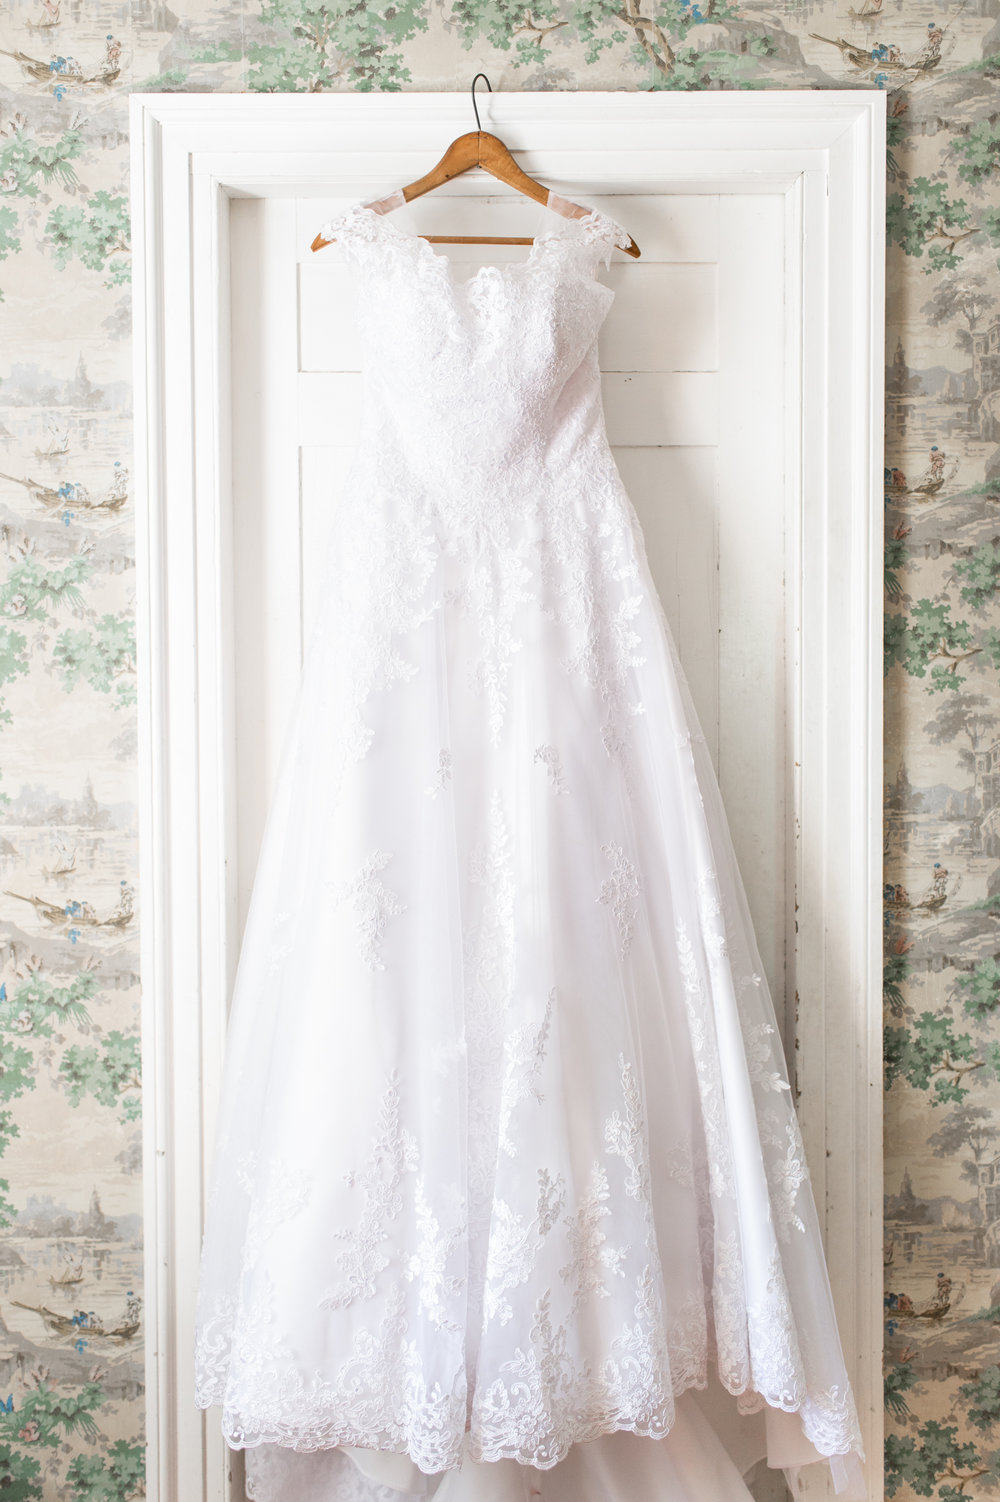 Maggie Sottero wedding dress from Country Bridals shop in New Hampshire